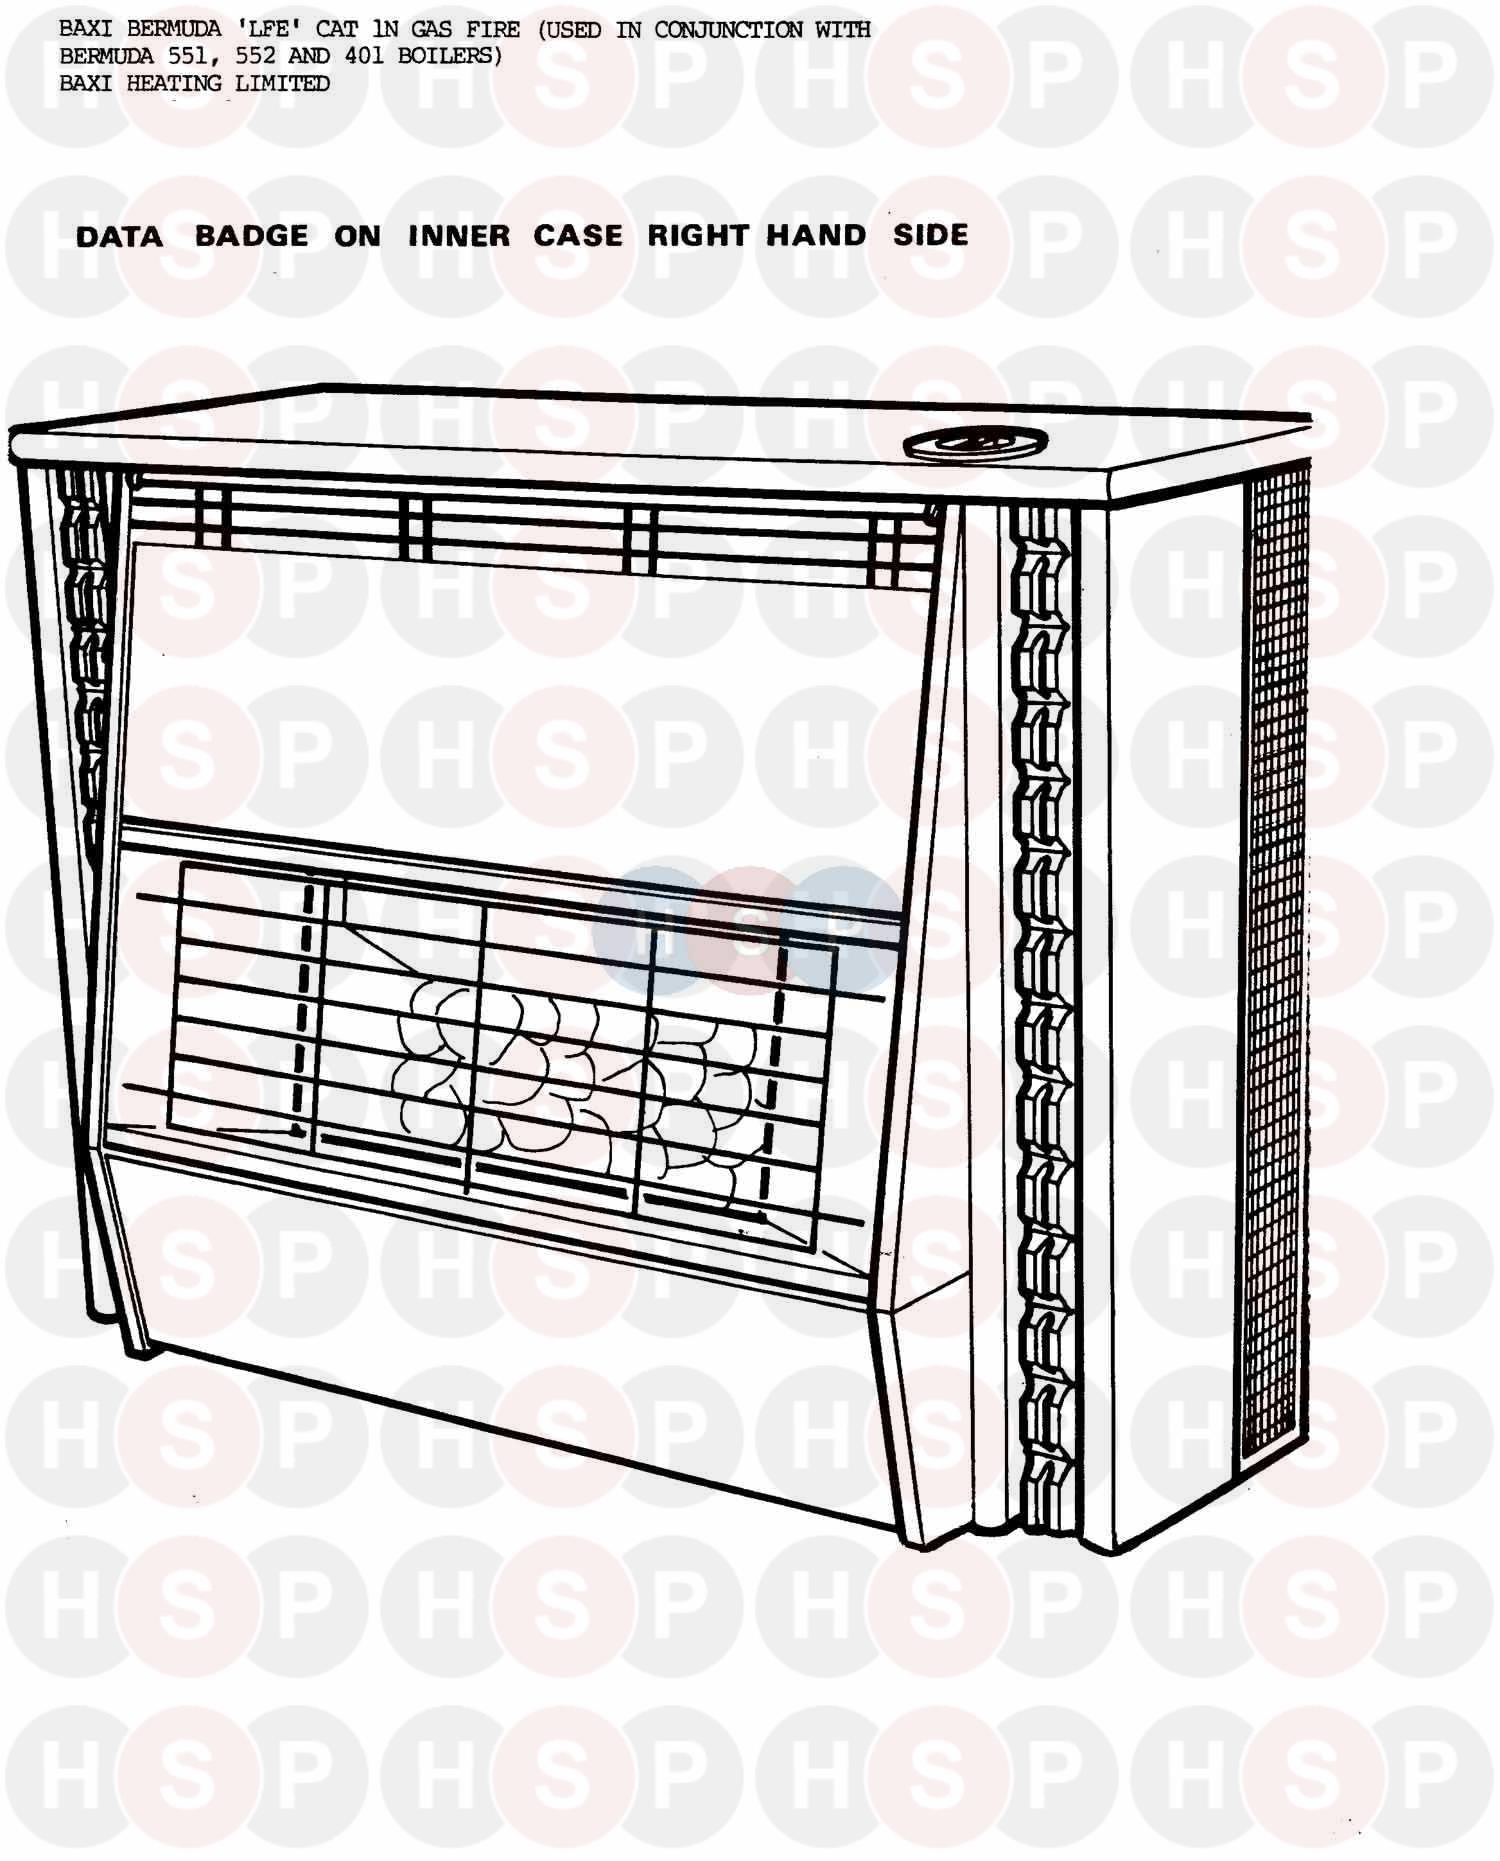 Baxi BERMUDA LFE FIRE ONLY Appliance Diagram (OVERVIEW